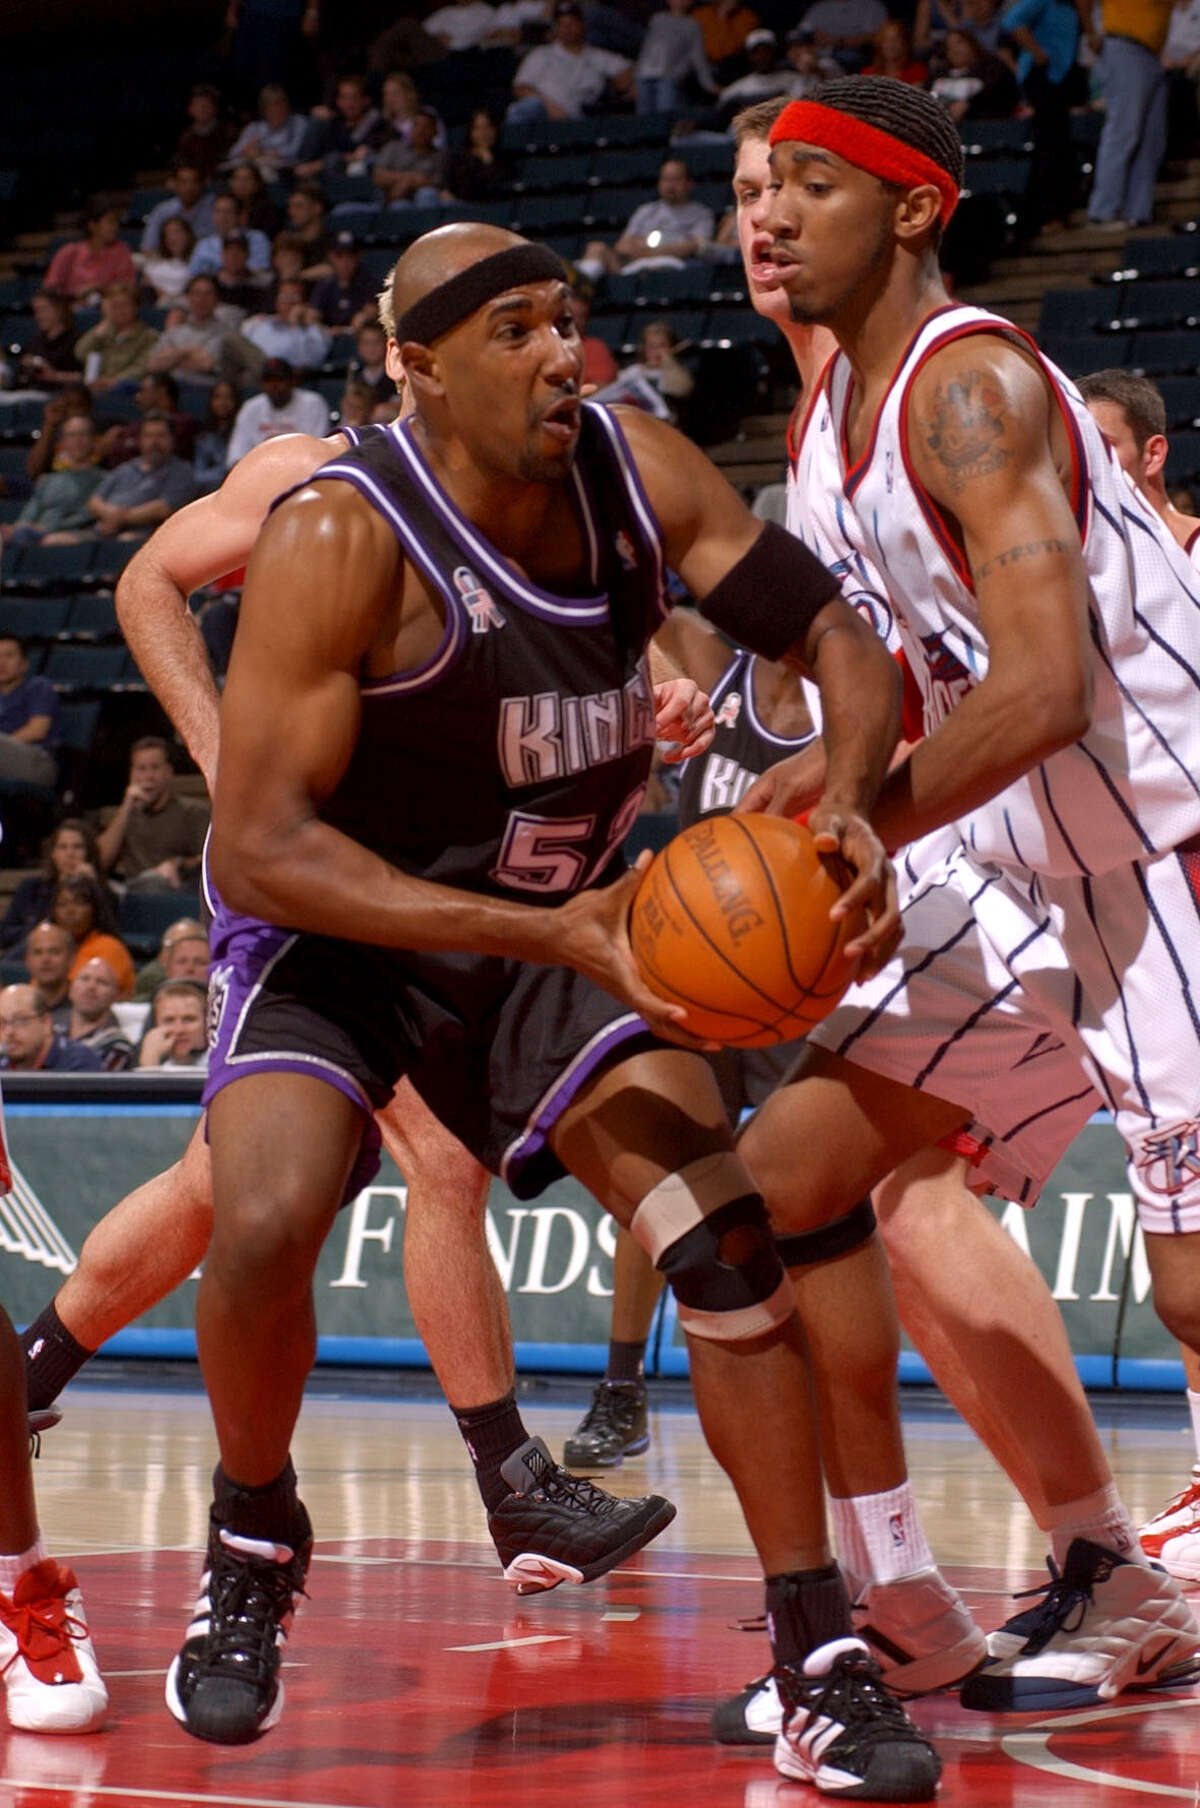 1968 NBA journeyman Chucky Brown was born on Leap Day. The N.C. State product played for 12 teams in a 13-year career and was part of the Rockets' 1994-95 championship squad. Brown will be celebrating his